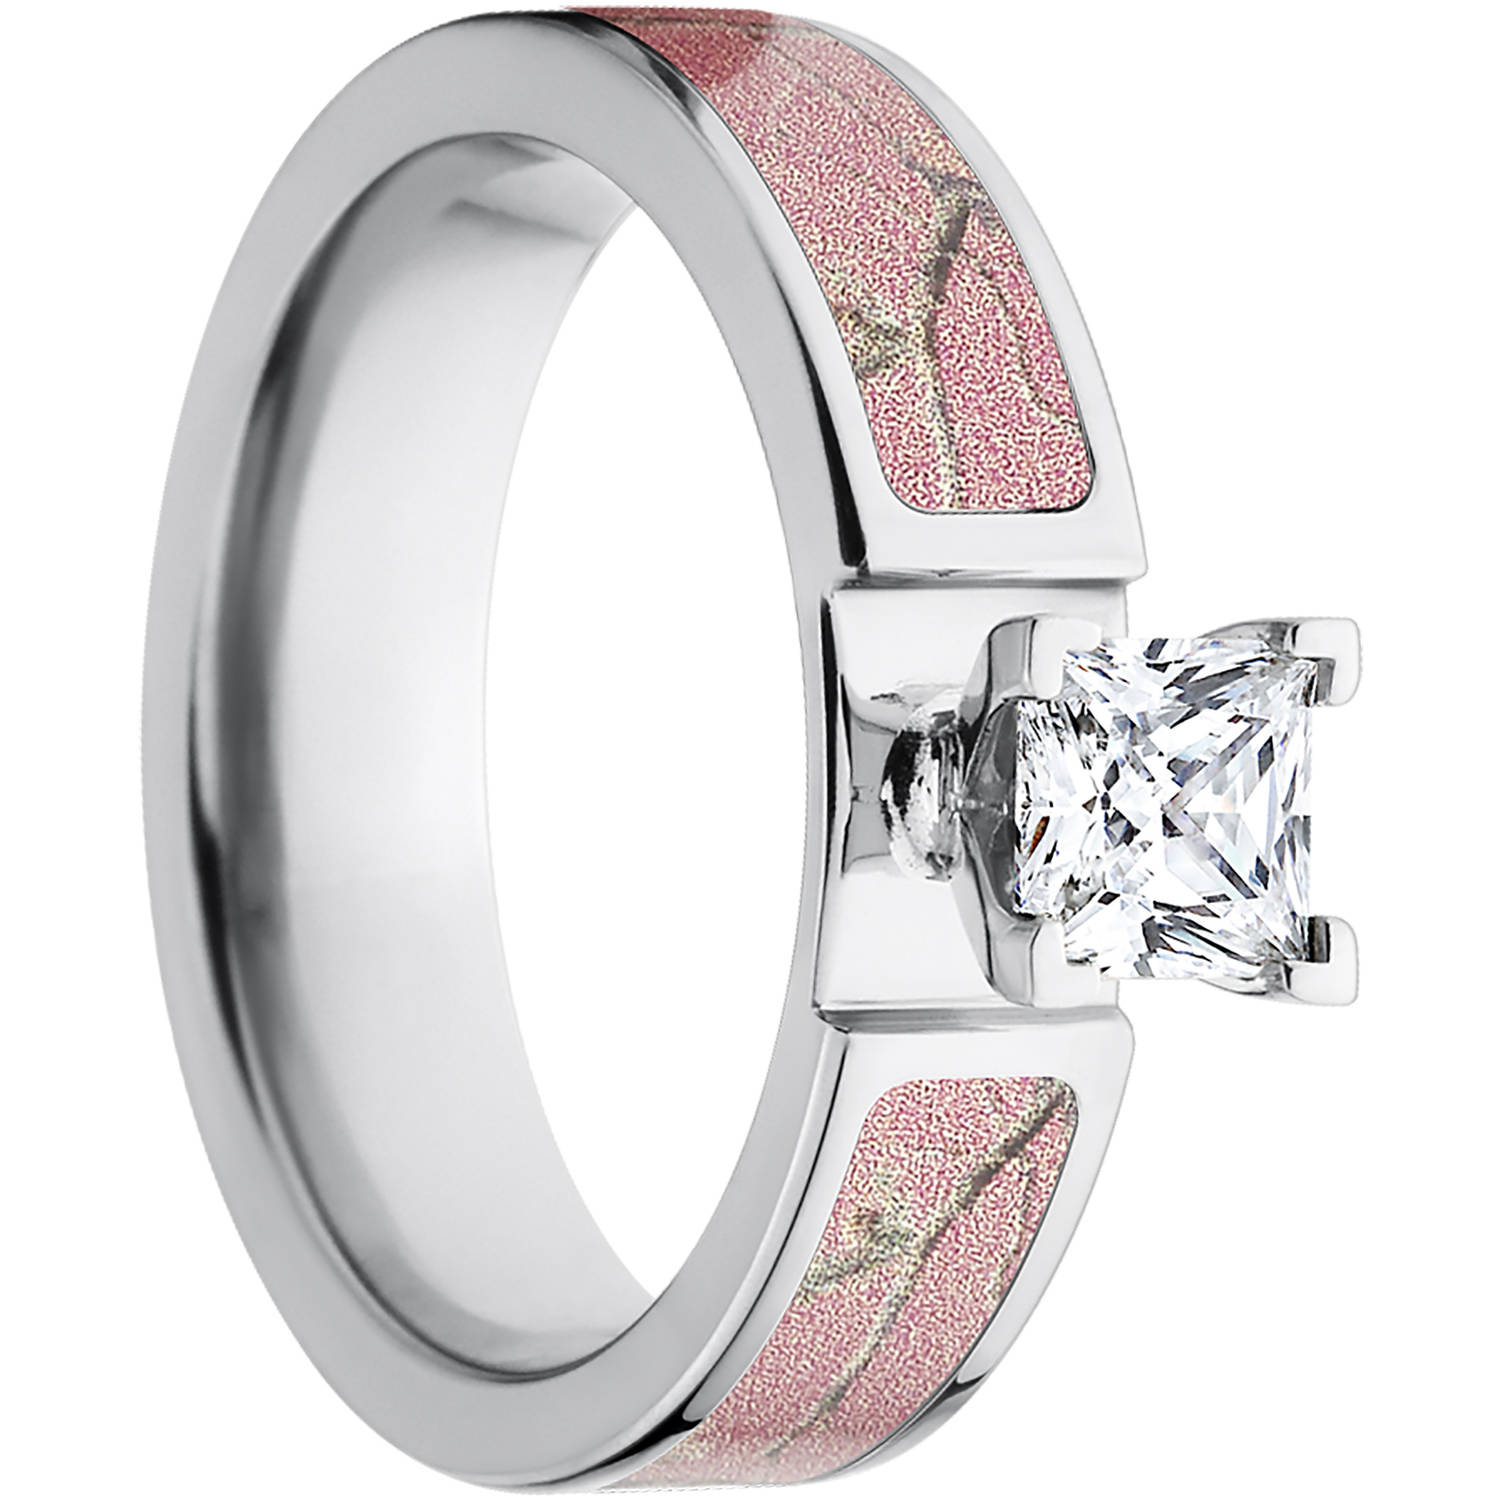 Realtree AP Pink Women s Camo 1 Carat T G W Princess CZ in 14kt